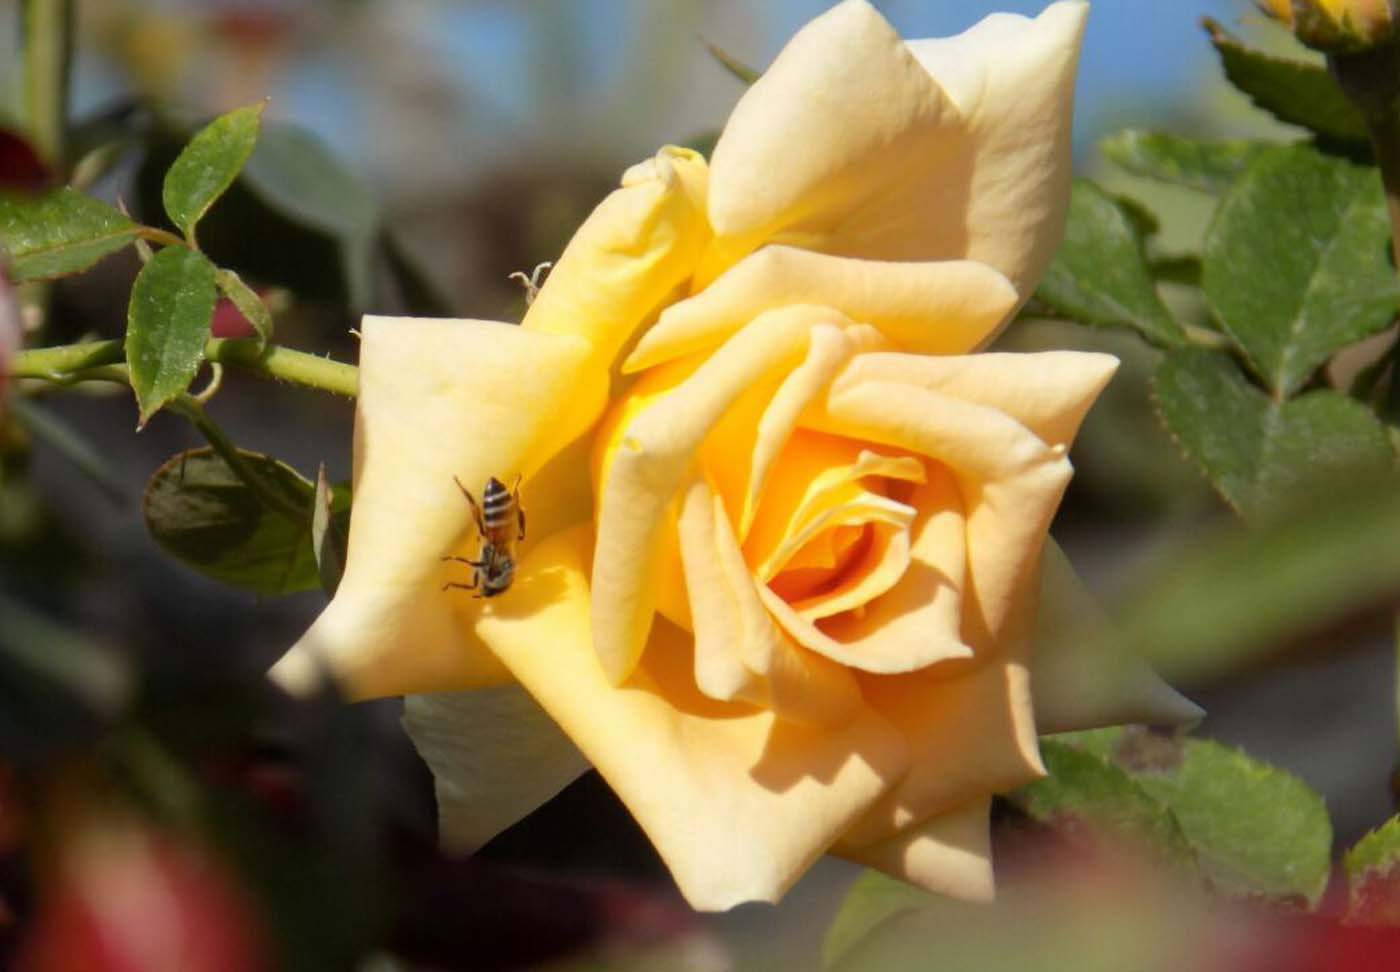 Rose gardening | How to grow healthy Roses 10 easy tips